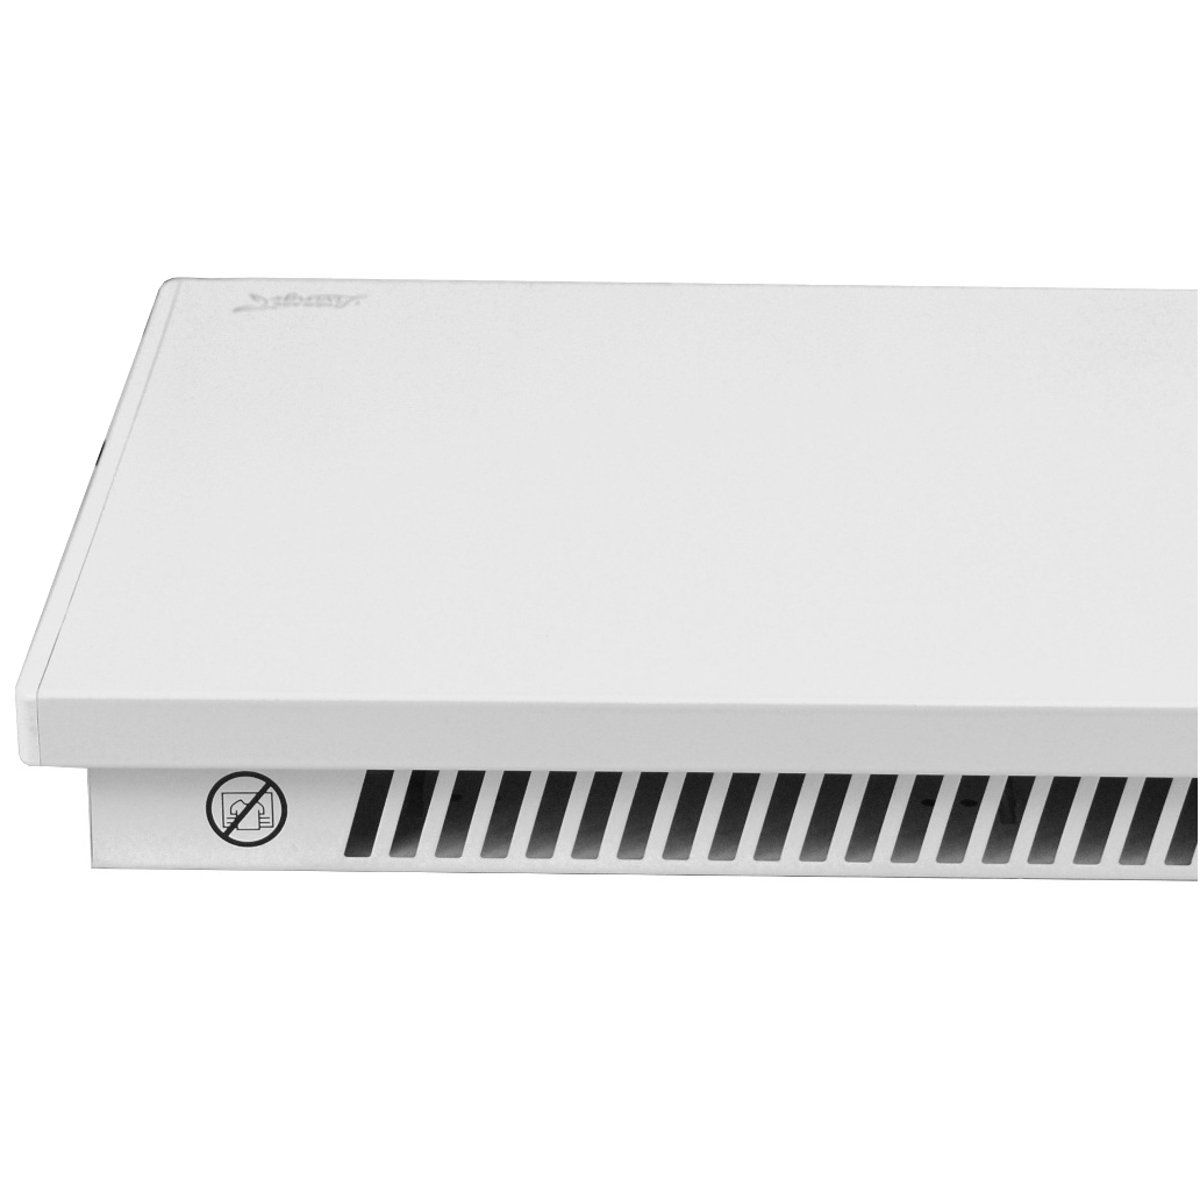 New Age Living Phantom 10 Wall Panel Heater 750w Radiant